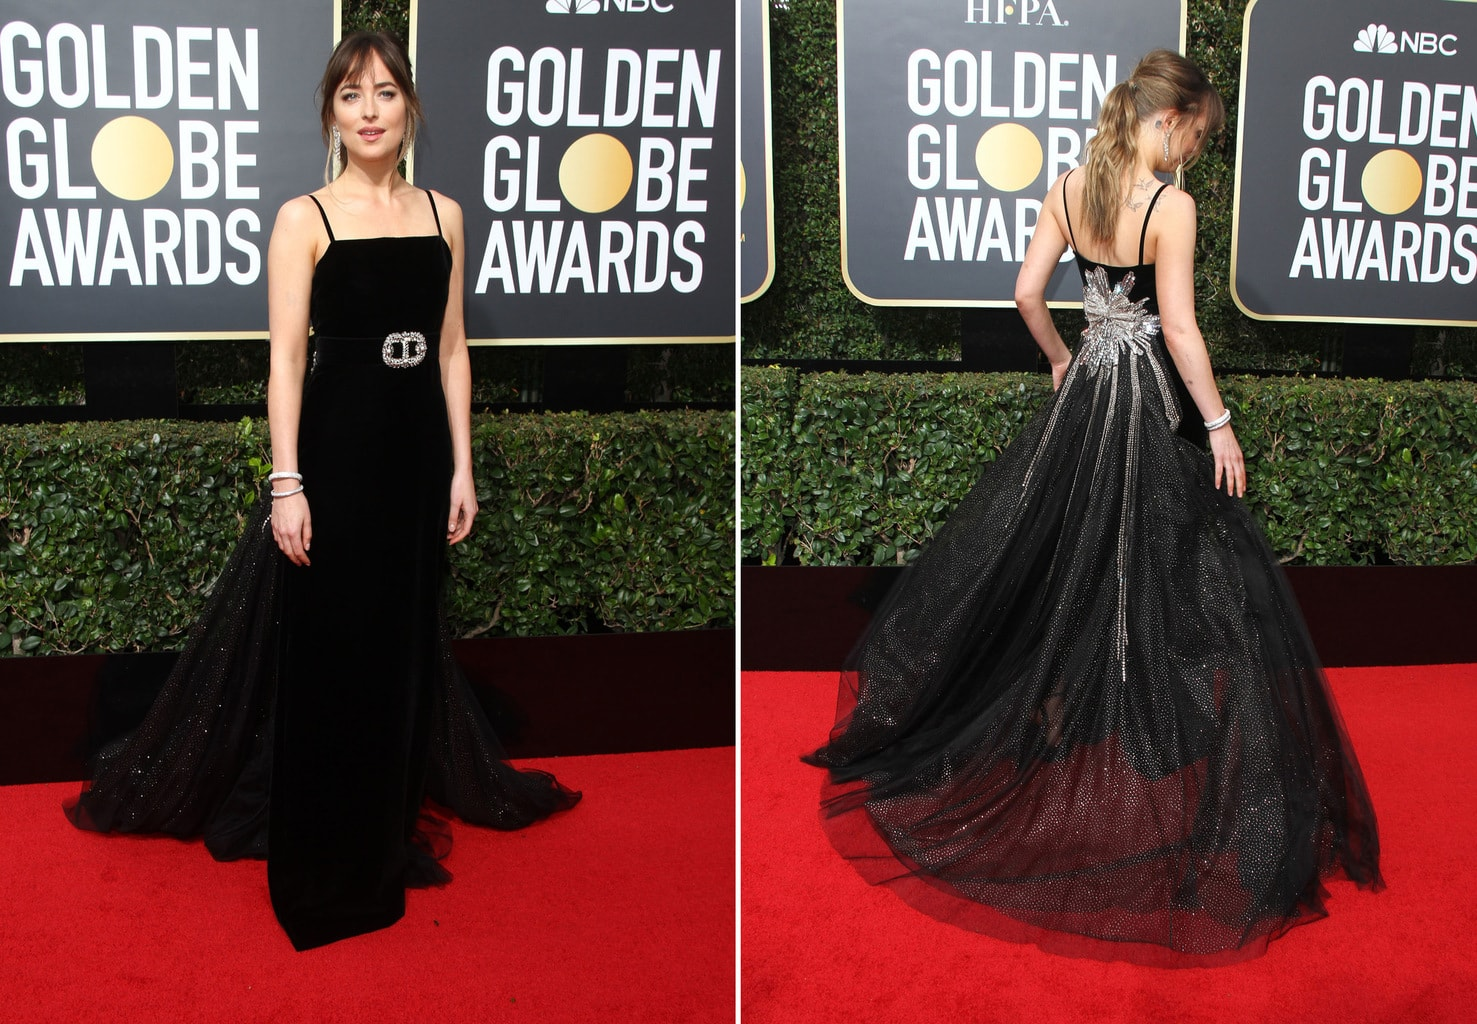 Dakota Johnson in a black Gucci gown with embellished back at the 2018 Golden Globe Awards red carpet